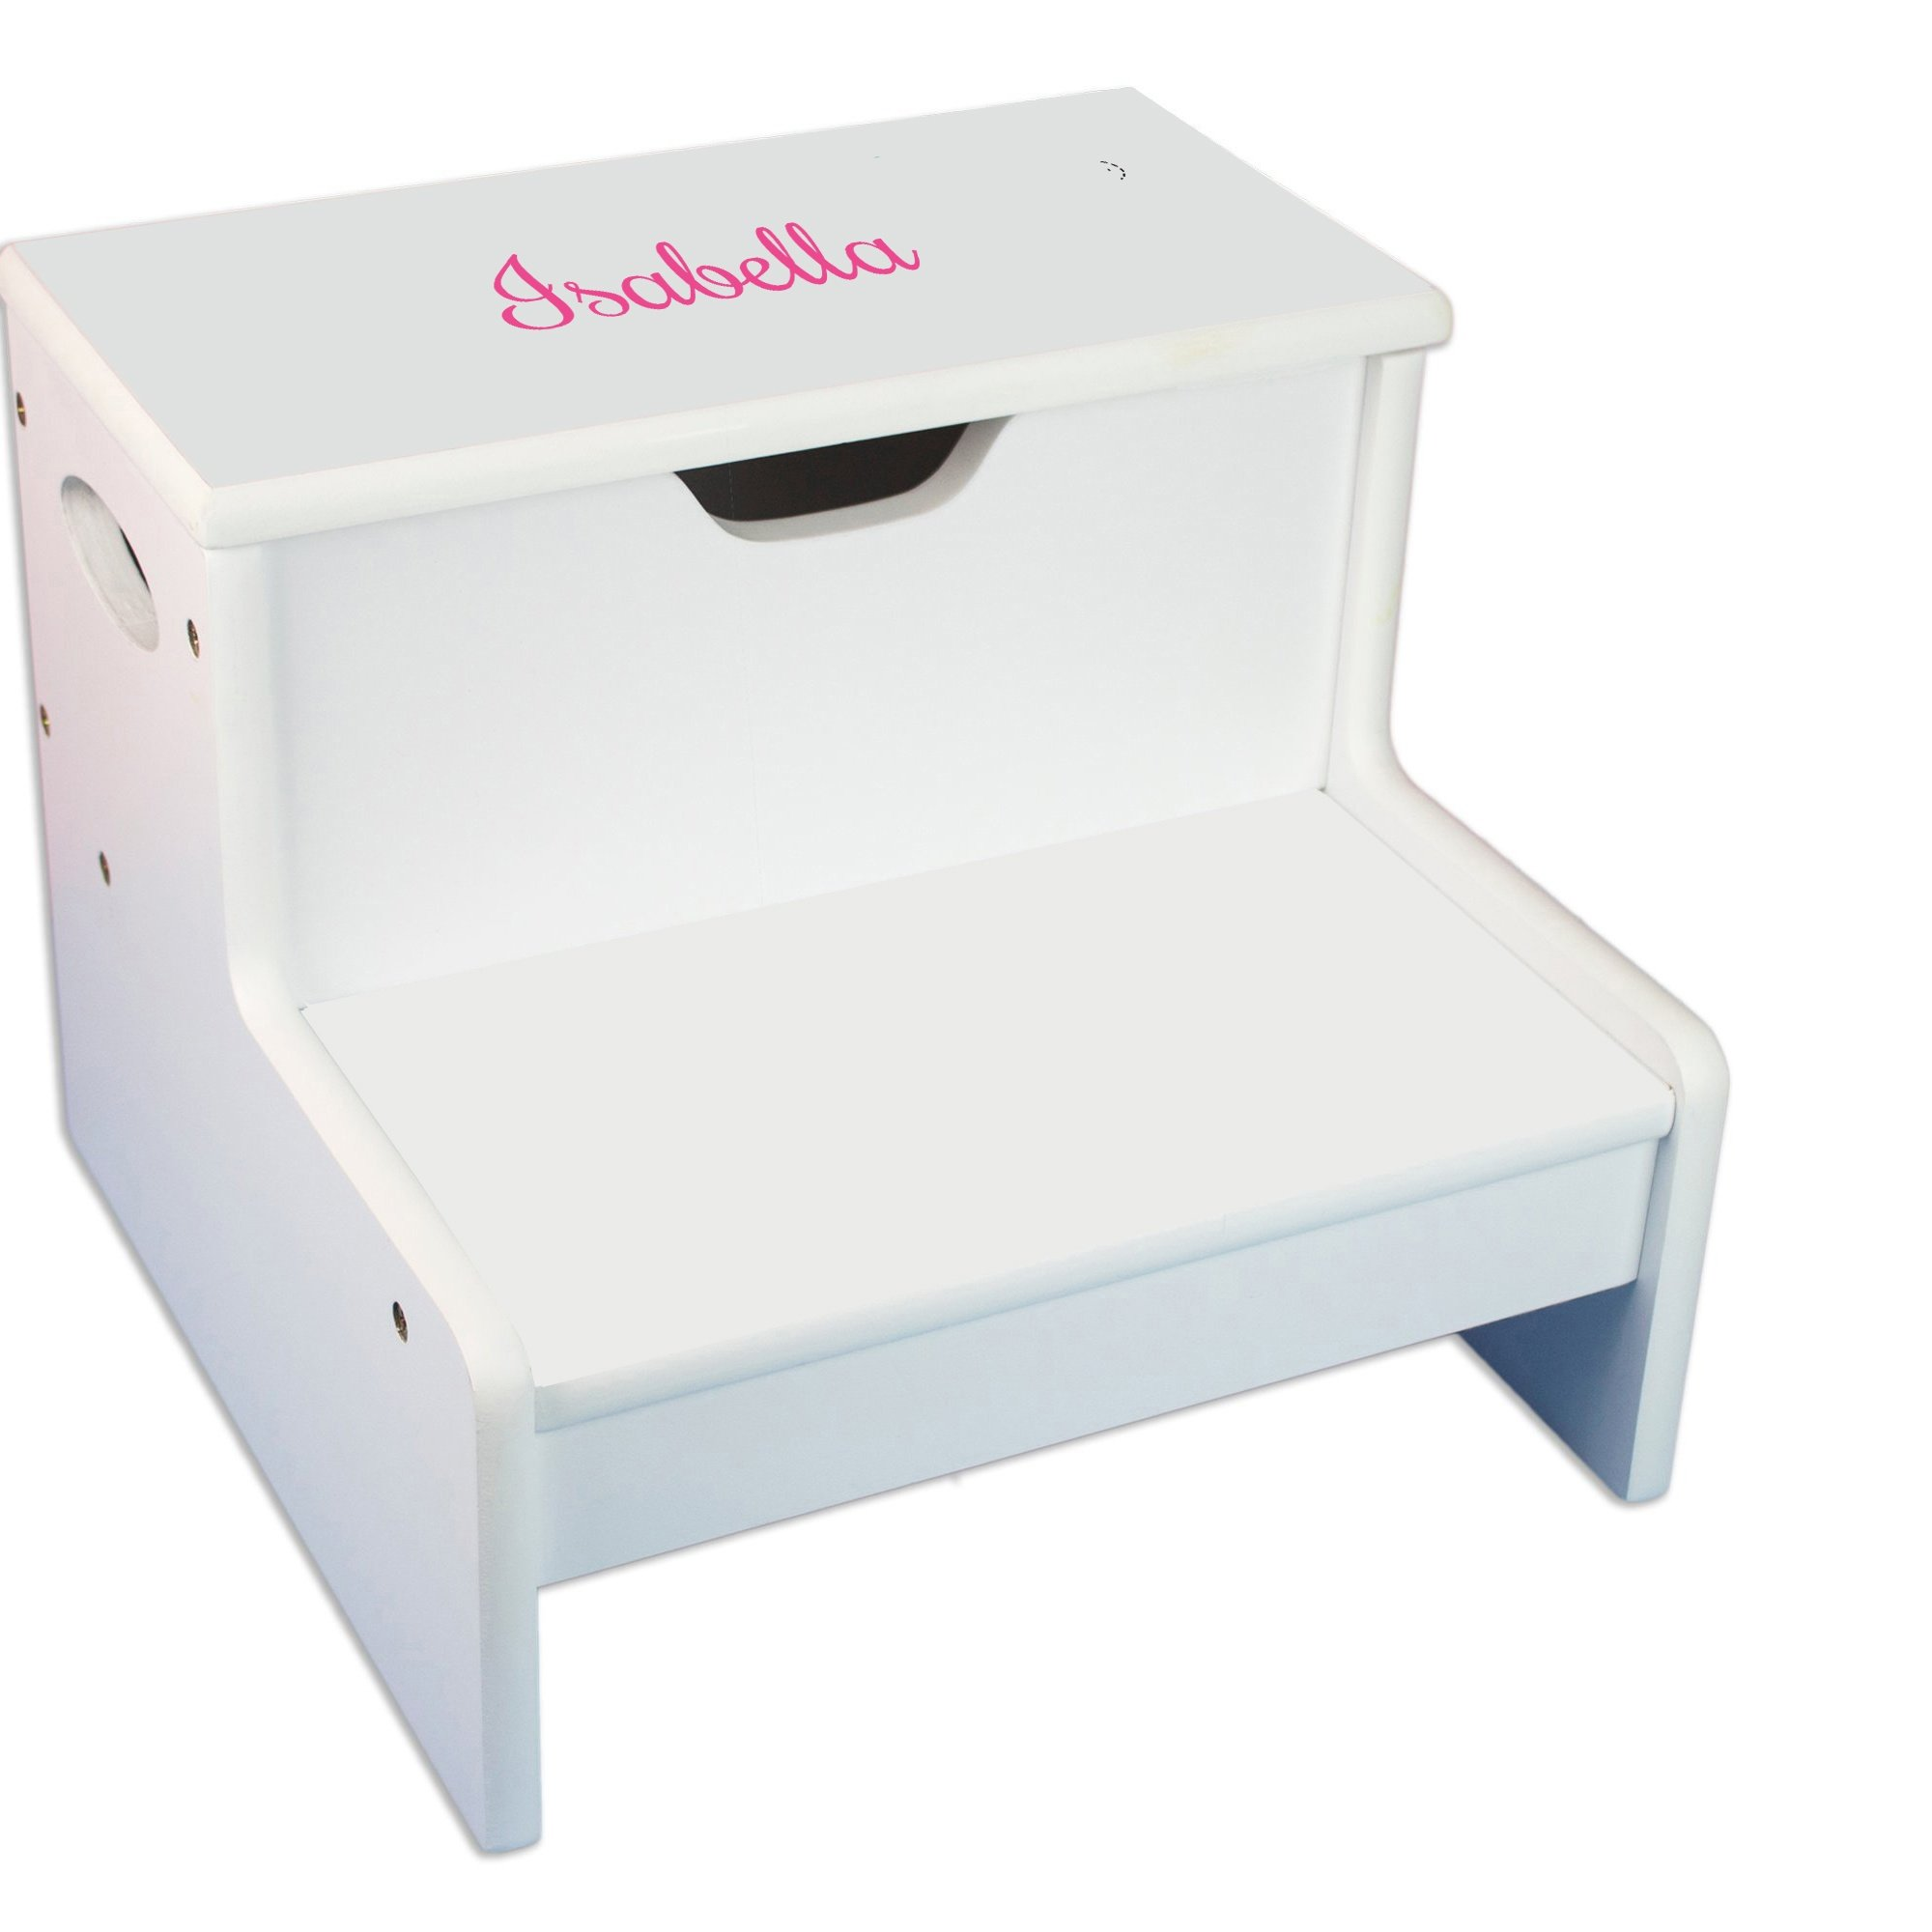 MyBambino Personalized Girls with name only Childrens Step Stool with Storage